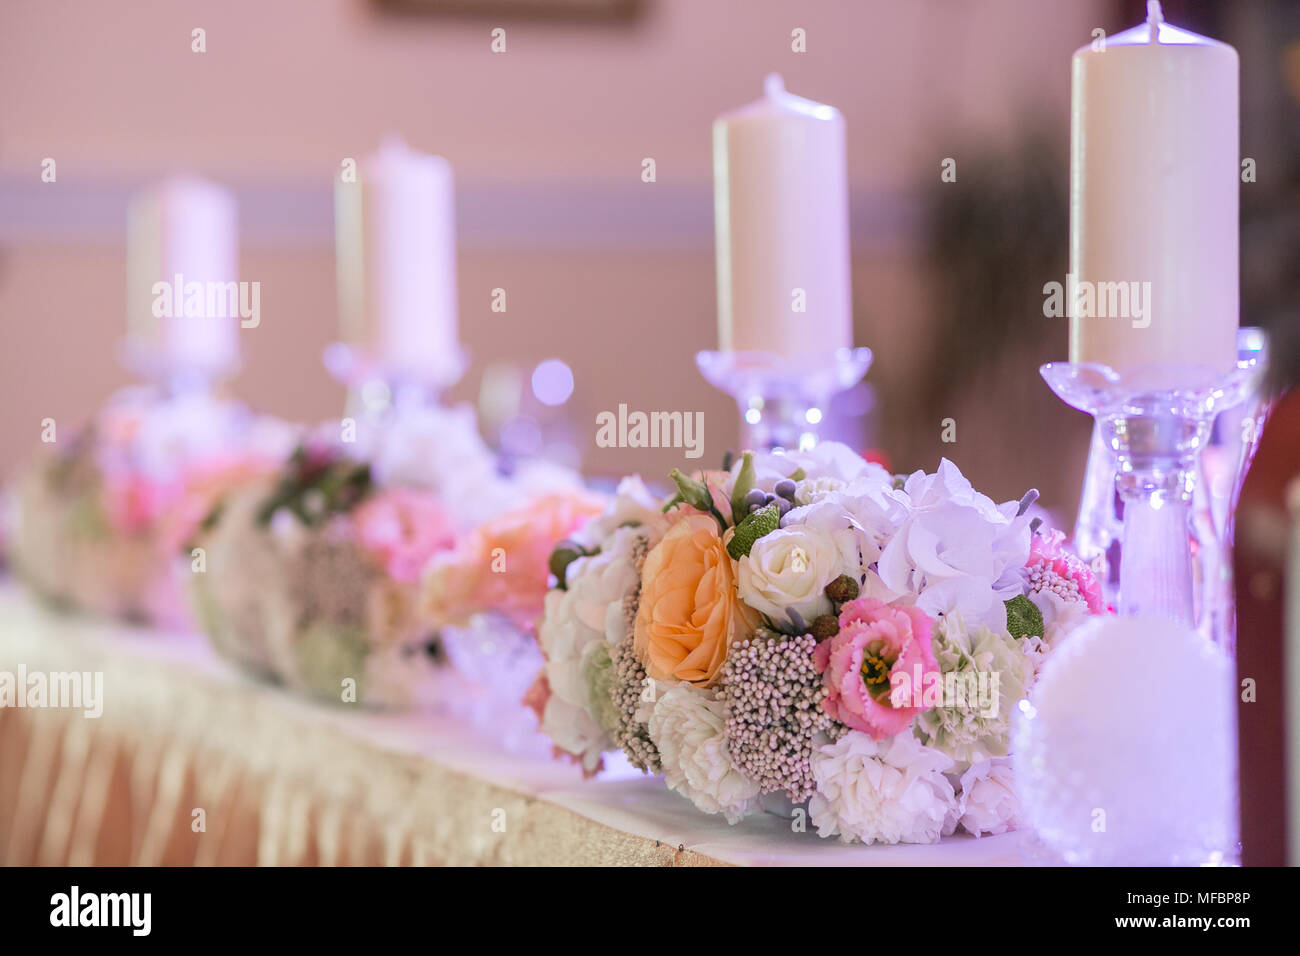 White candles on metal gold candlesticks stand on tables at luxury wedding reception in restaurant. Stock Photo